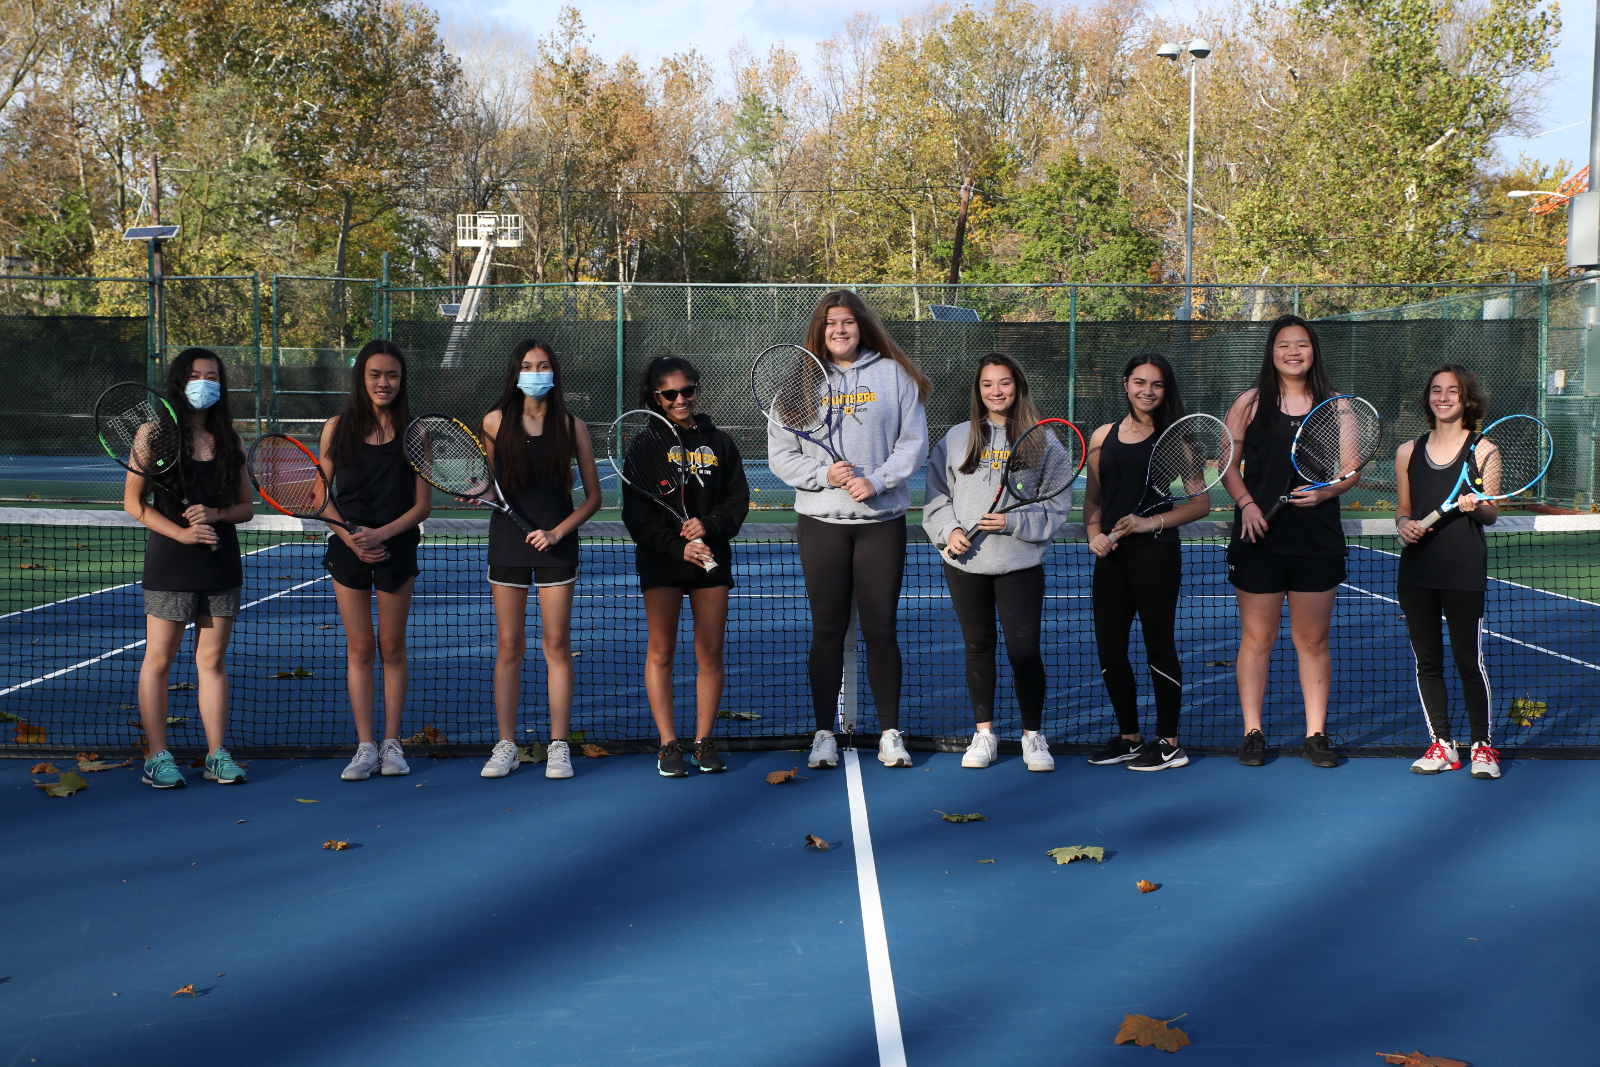 SEC Releases All Conference Girls Tennis Teams